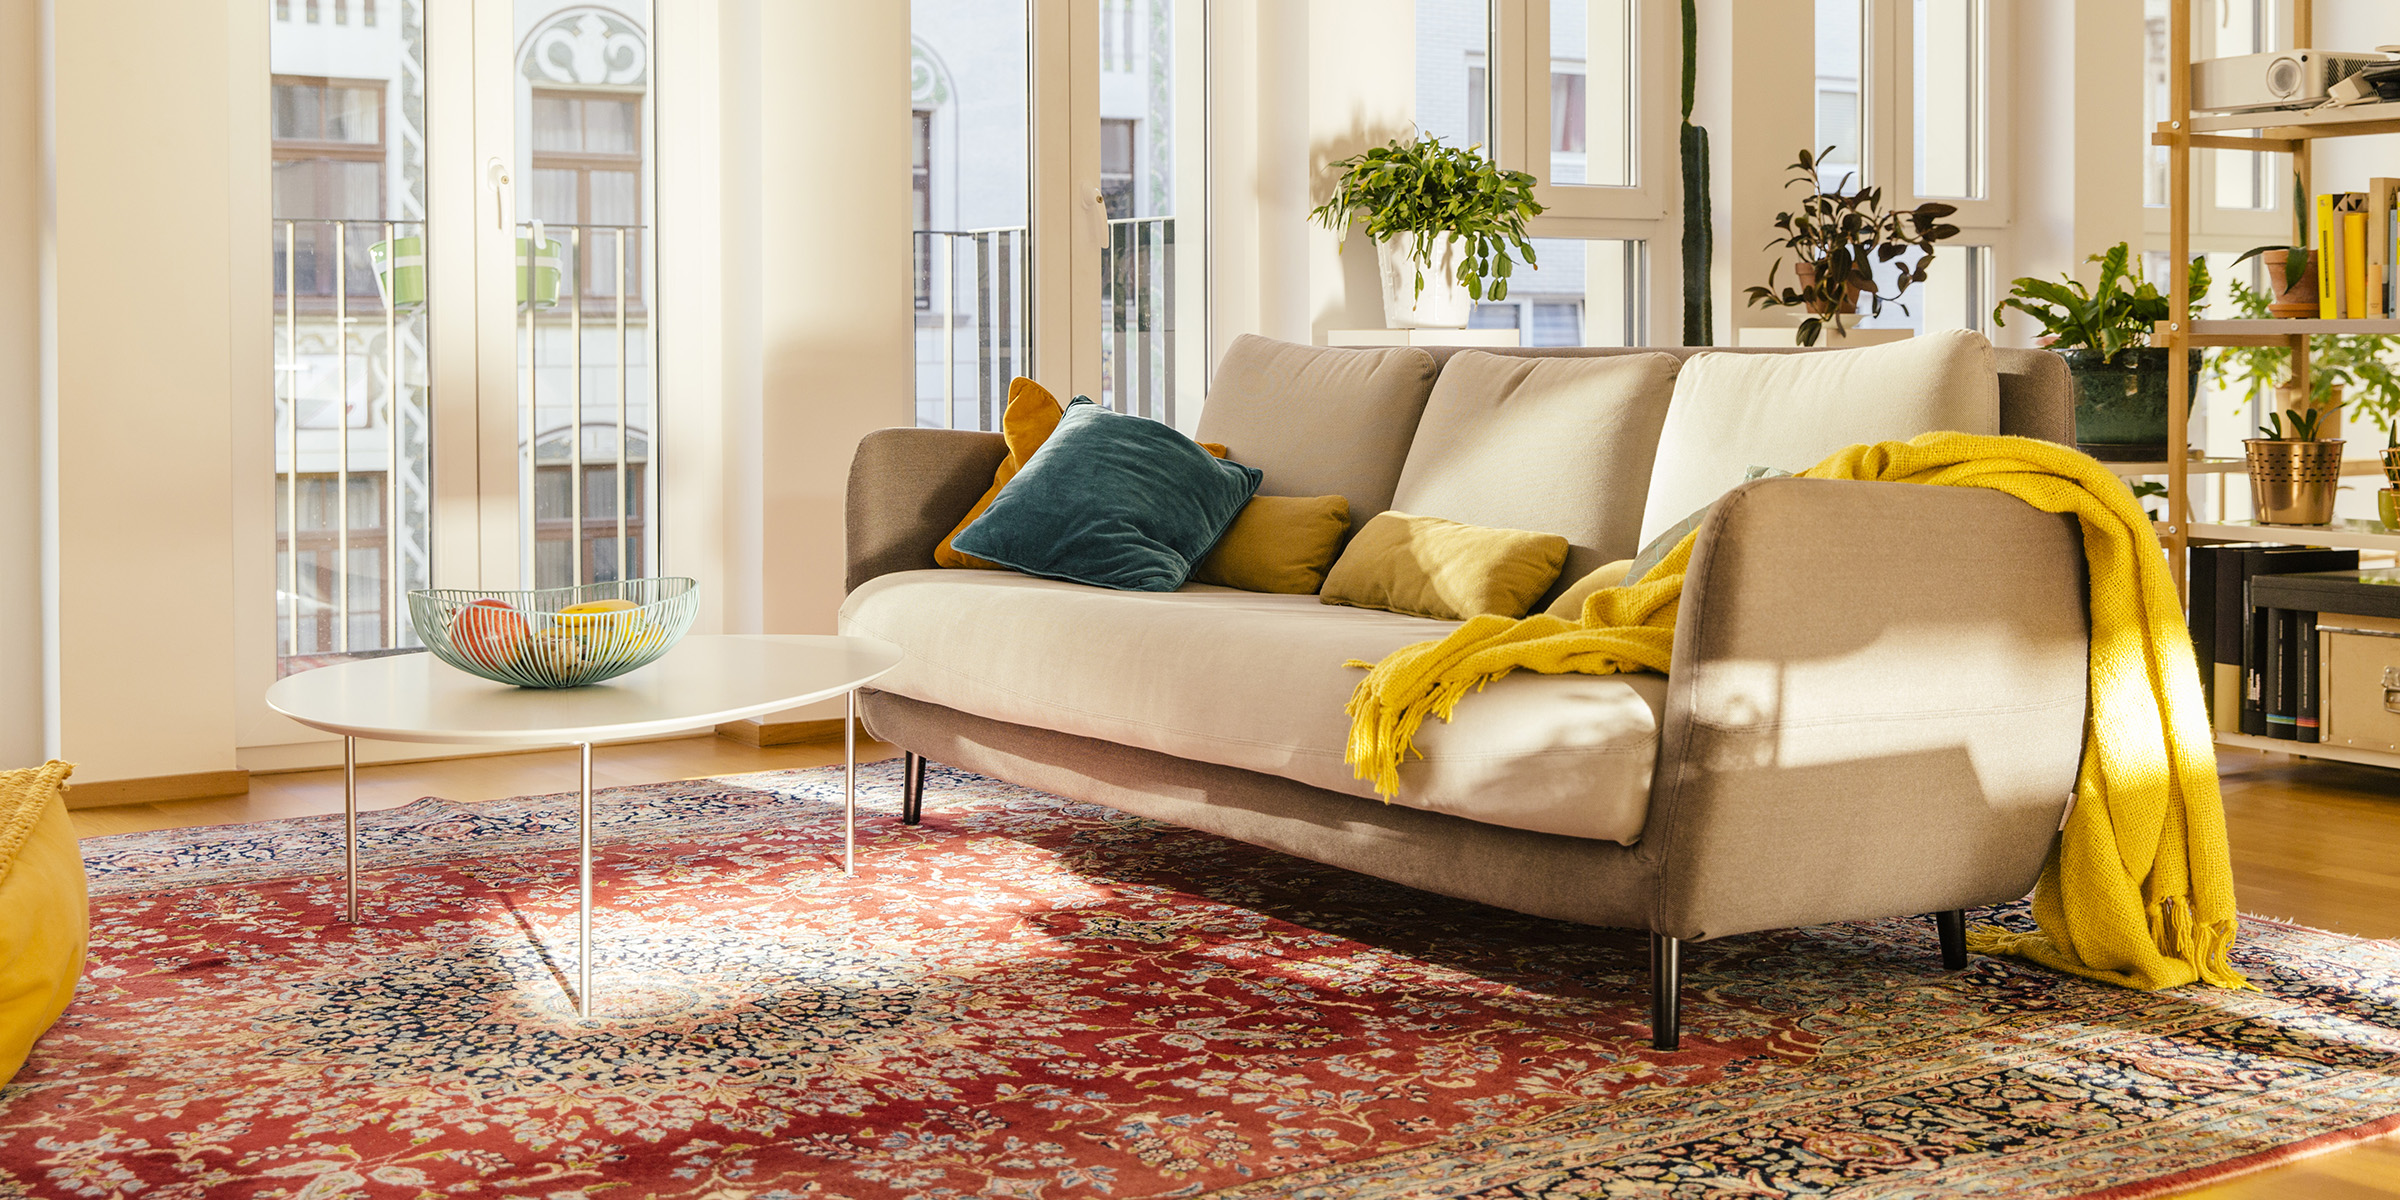 Modern Living Room Persian Rug These Are The Best Places To Buy Area Rugs For Your Home 2018